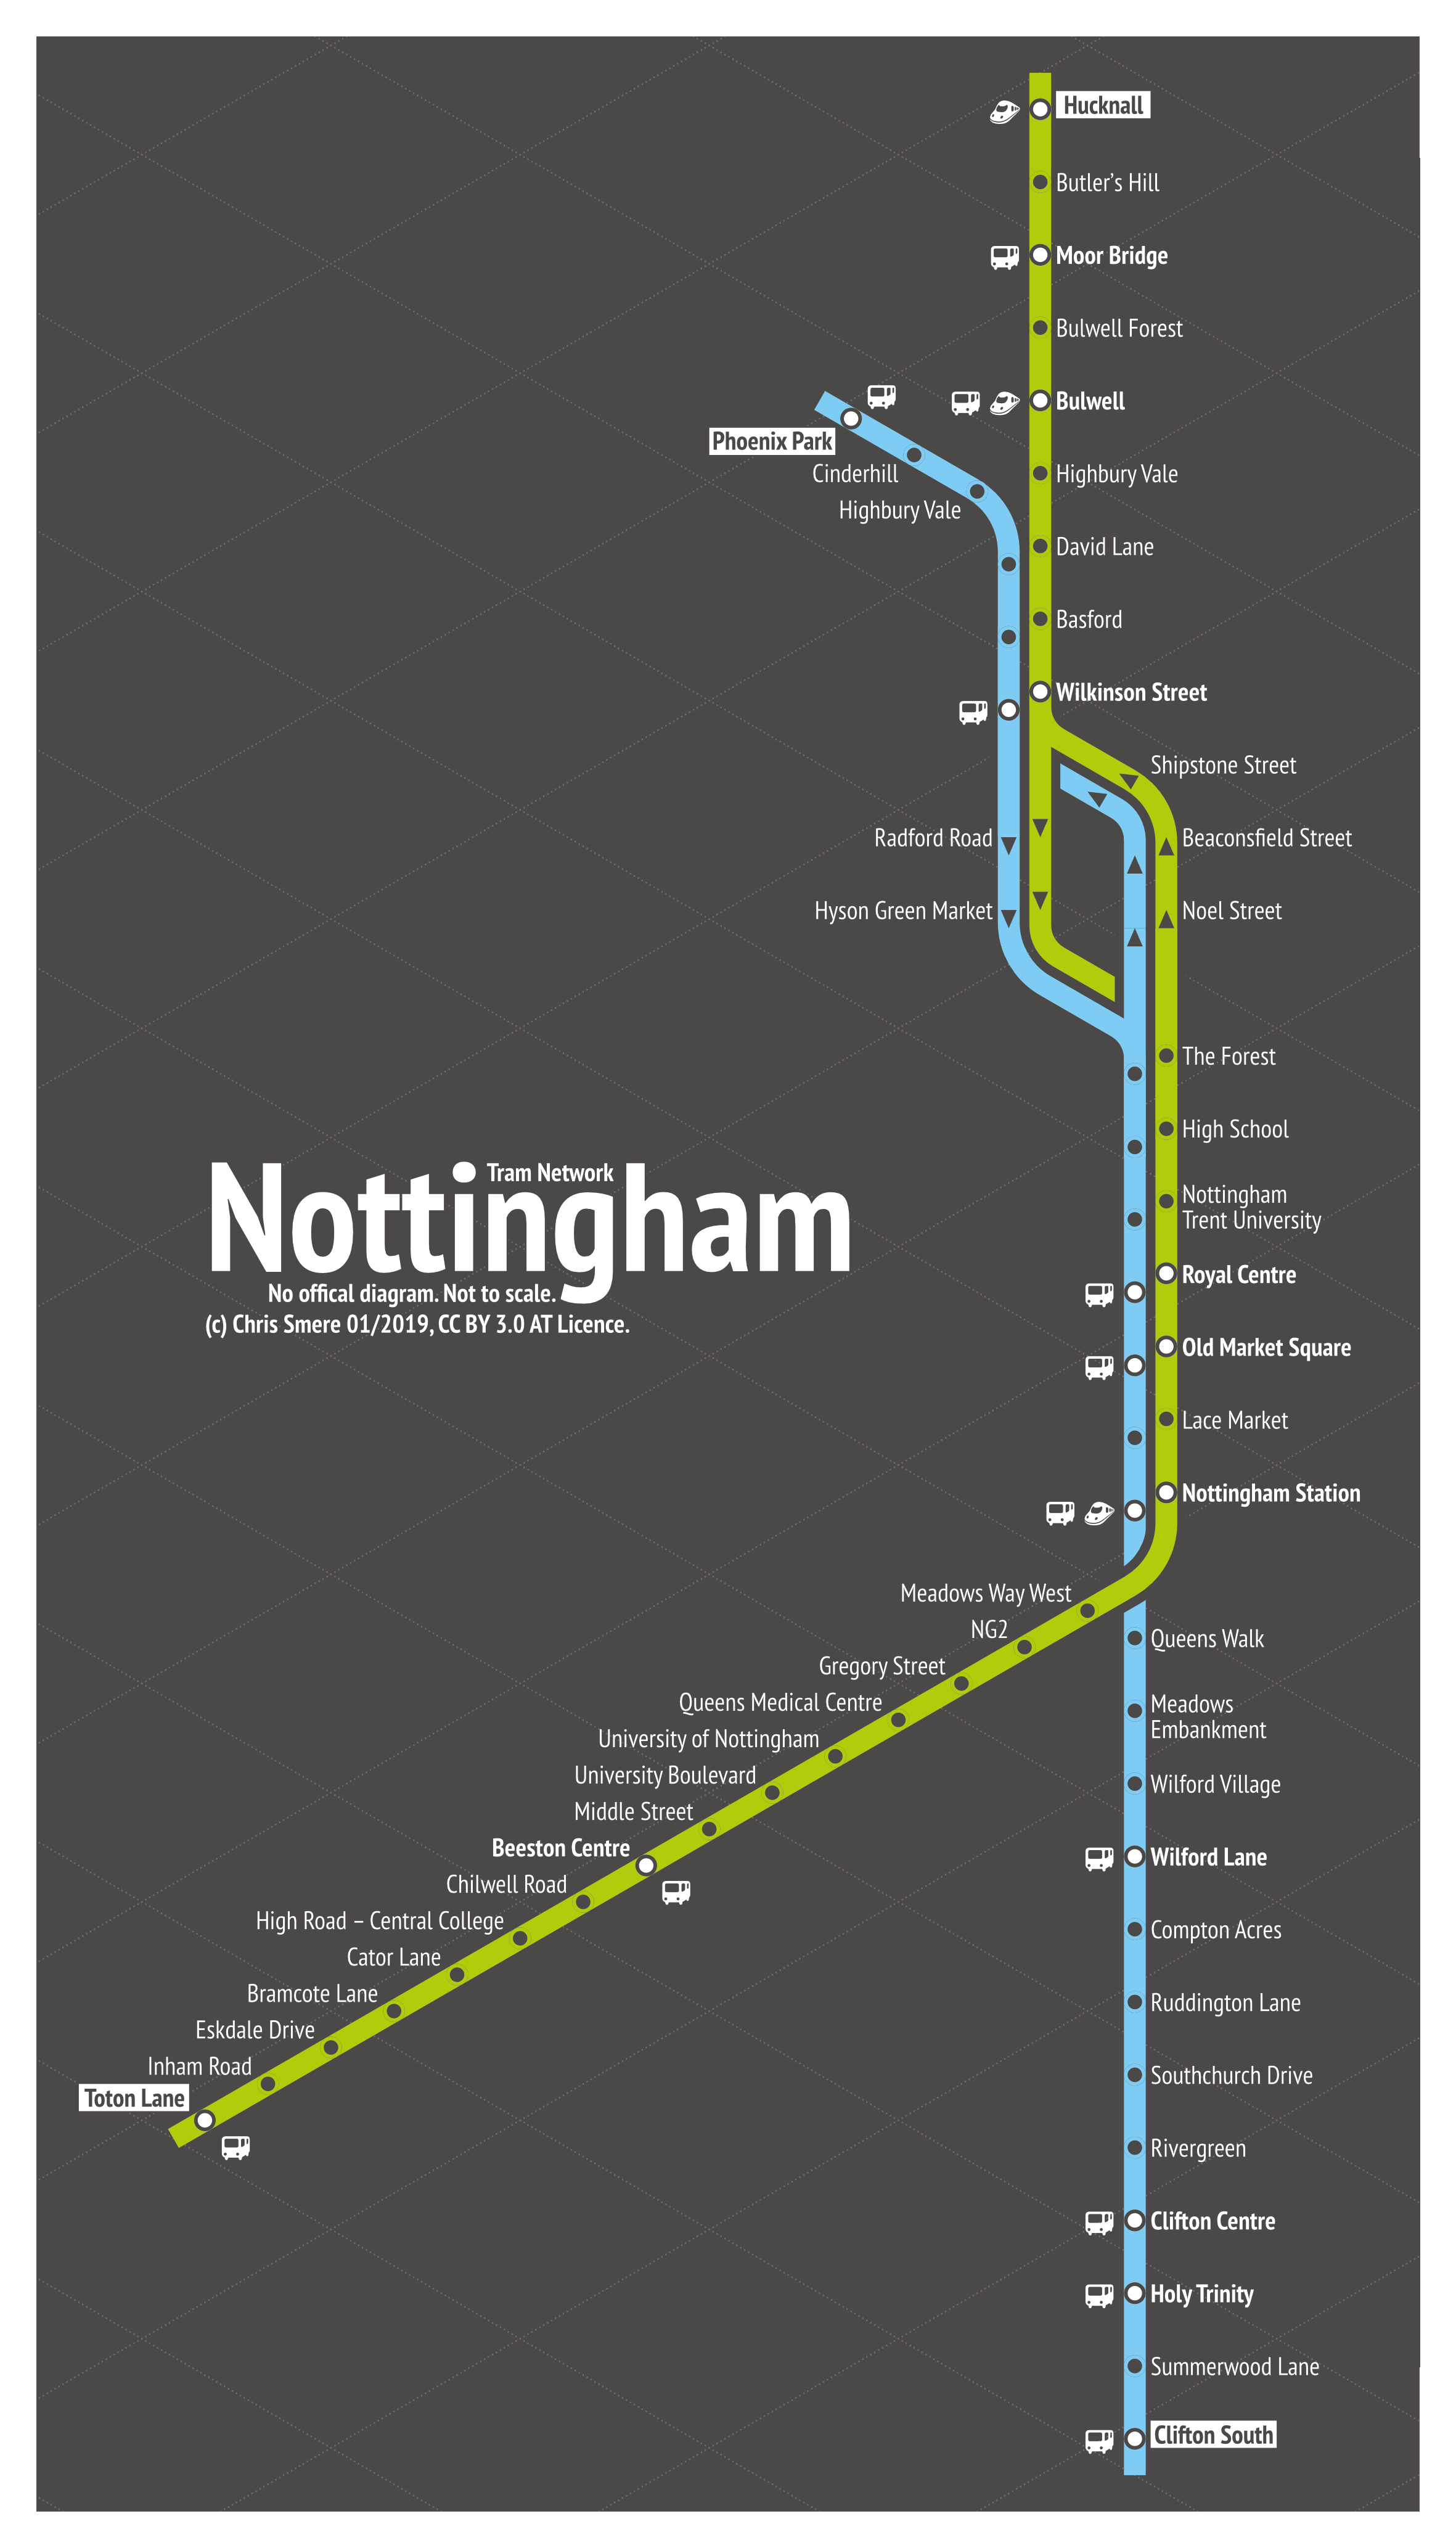 Nottingham - Tram Network Transit Map - Share your work - Affinity